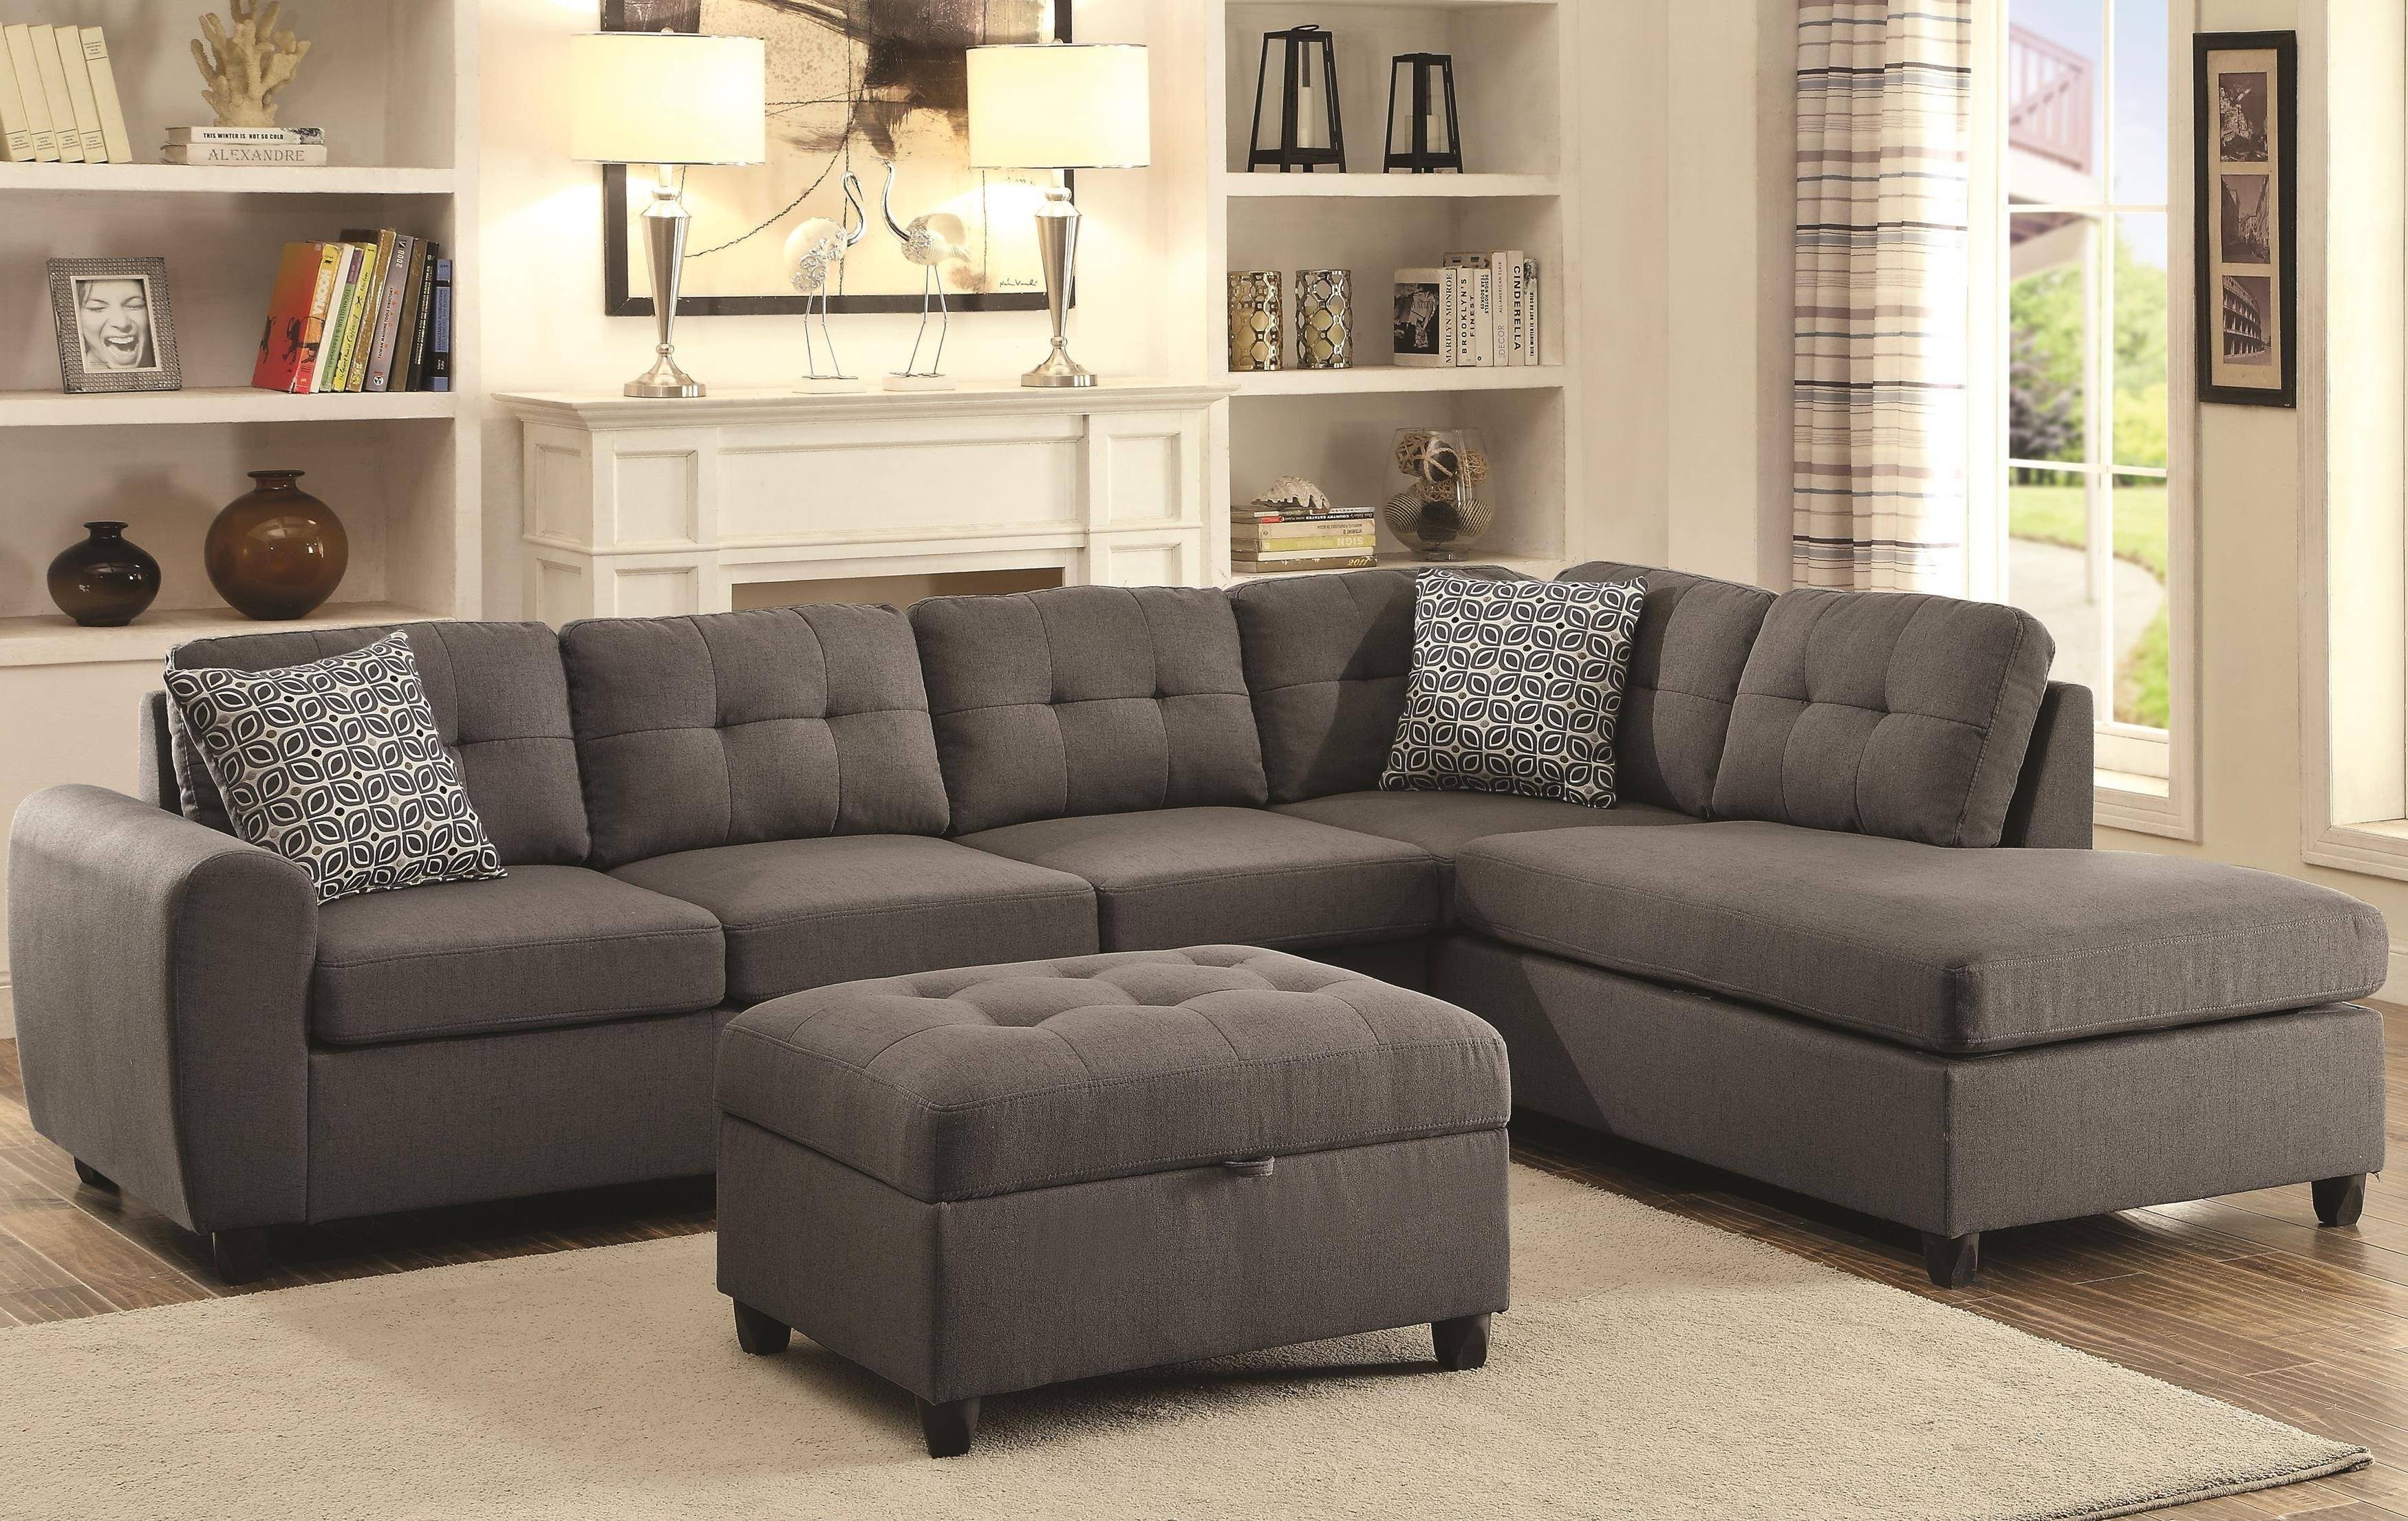 Coaster 500413 Sofa Chaise Sectional With Steel Grey Fabric Upholstery With Regard To Coasters Sofas (View 5 of 15)